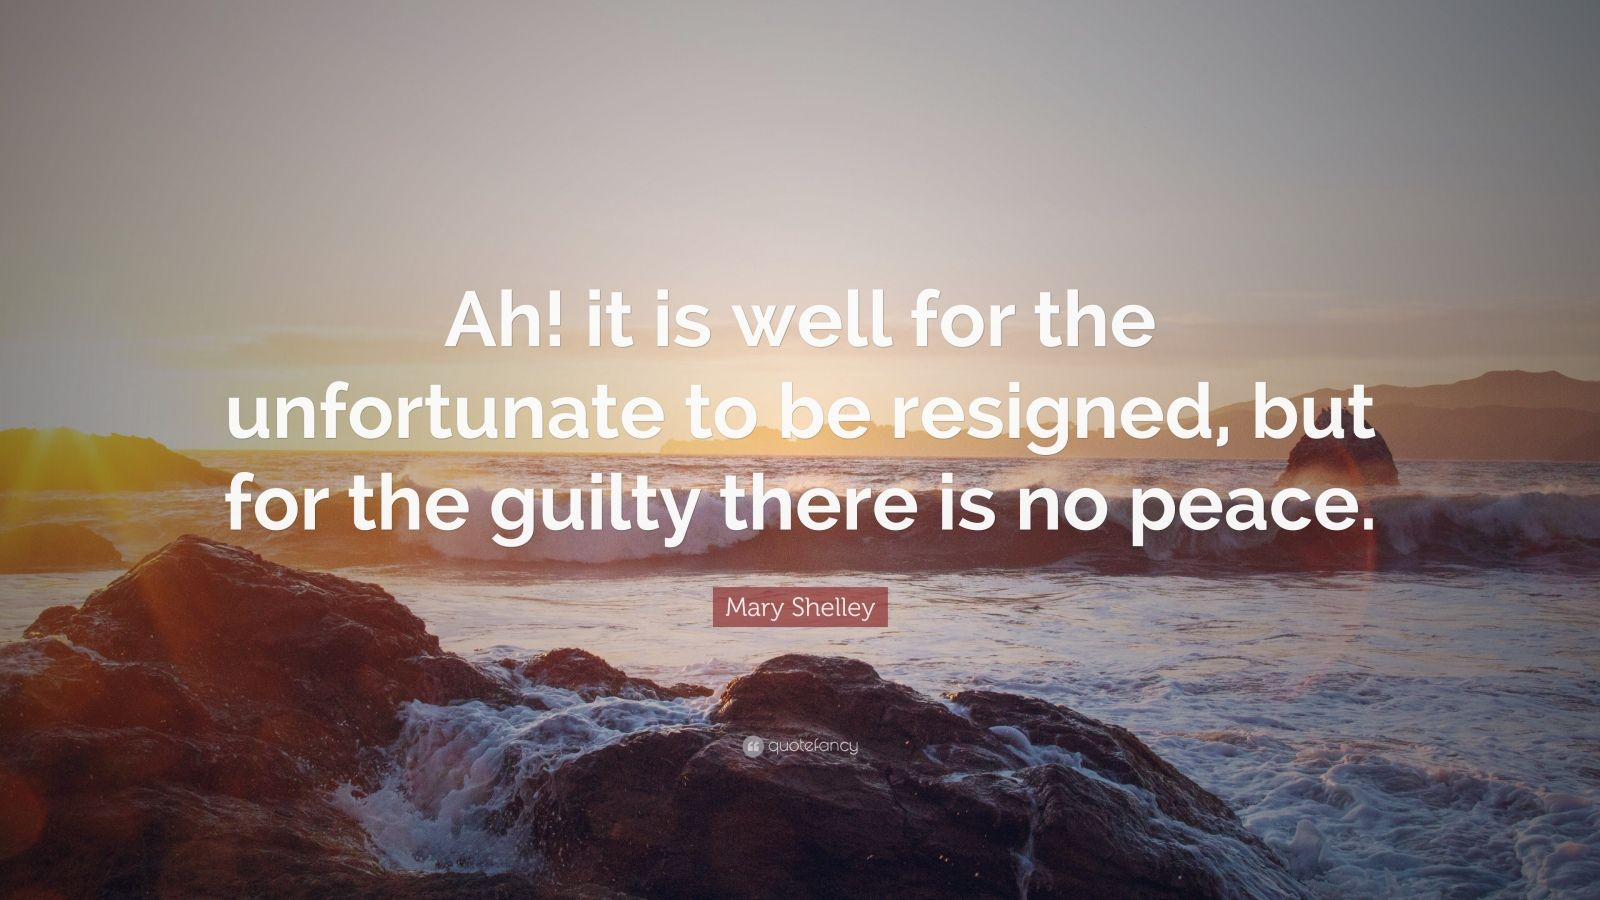 """Mary Shelley Quote: """"Ah! it is well for the unfortunate to be resigned, but for the guilty there is no peace."""""""